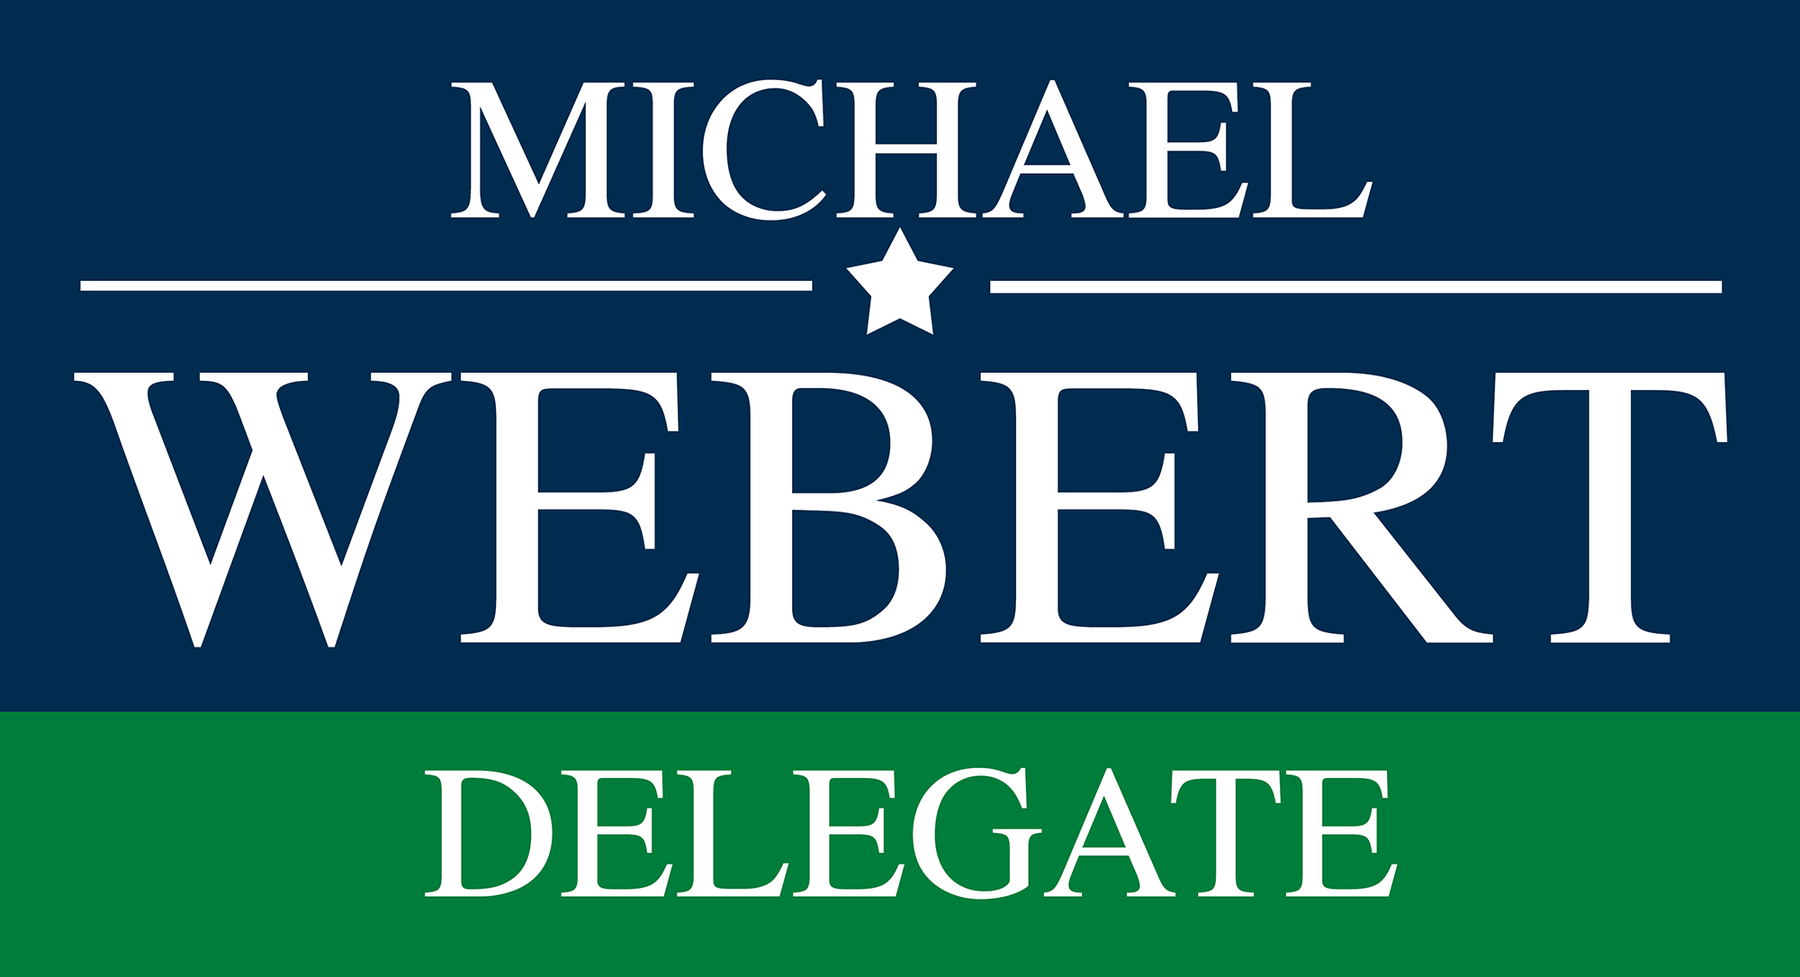 Michael Webert for Delegate: General Fund